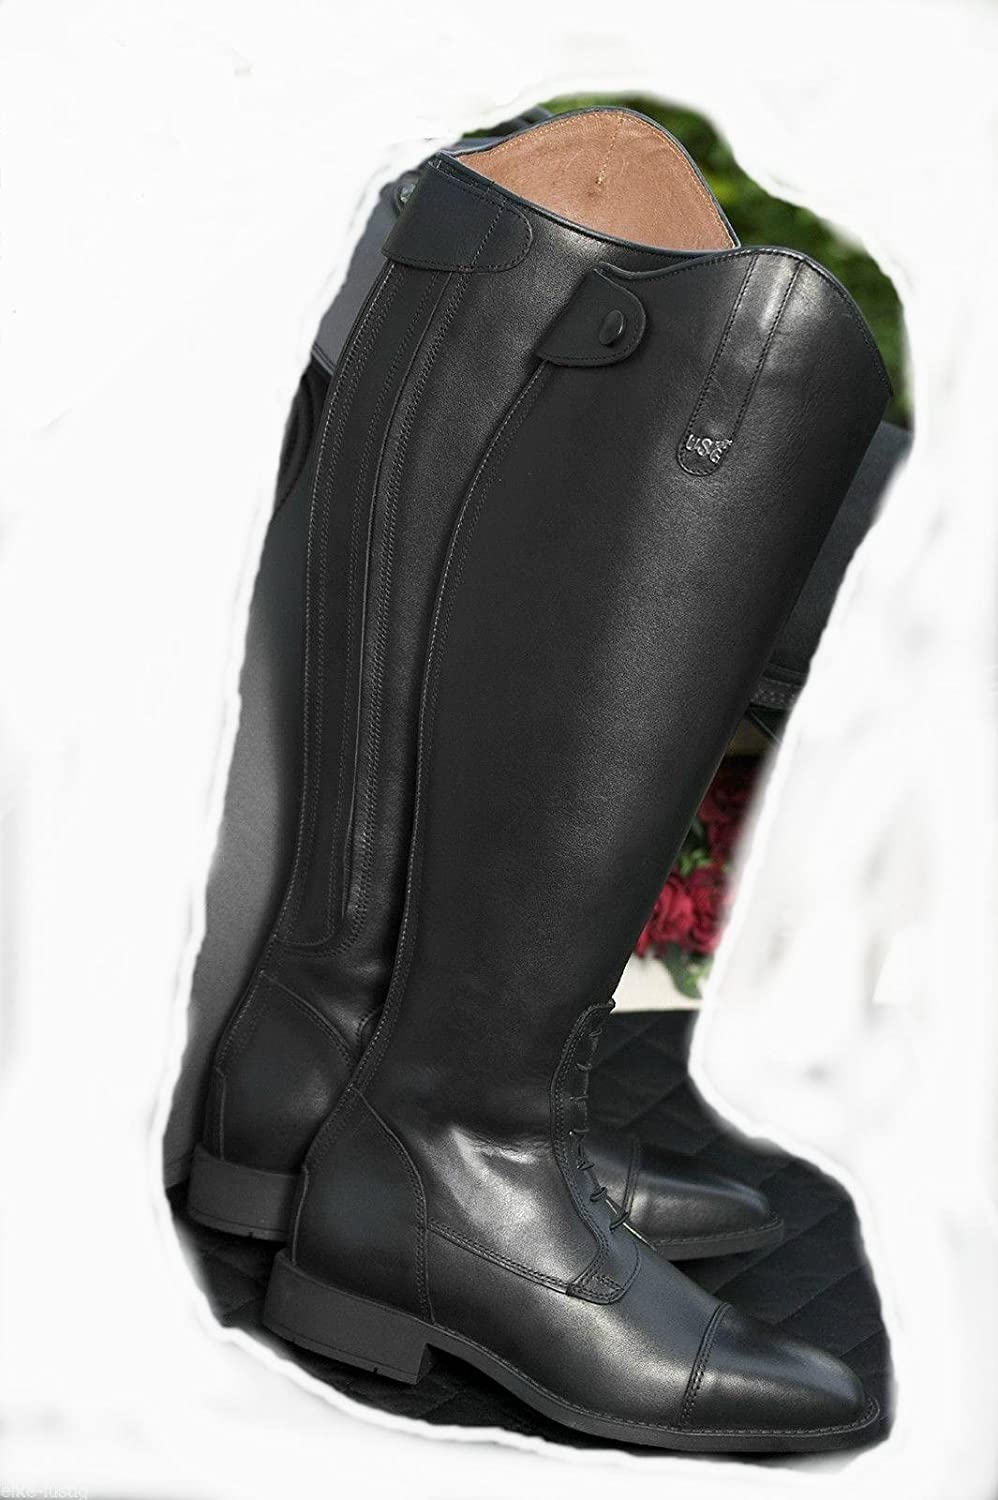 United Sportproducts Germany USG 12050009-440-212 Reitstiefel, schwarz, Gr. 40, SW 39, H 47